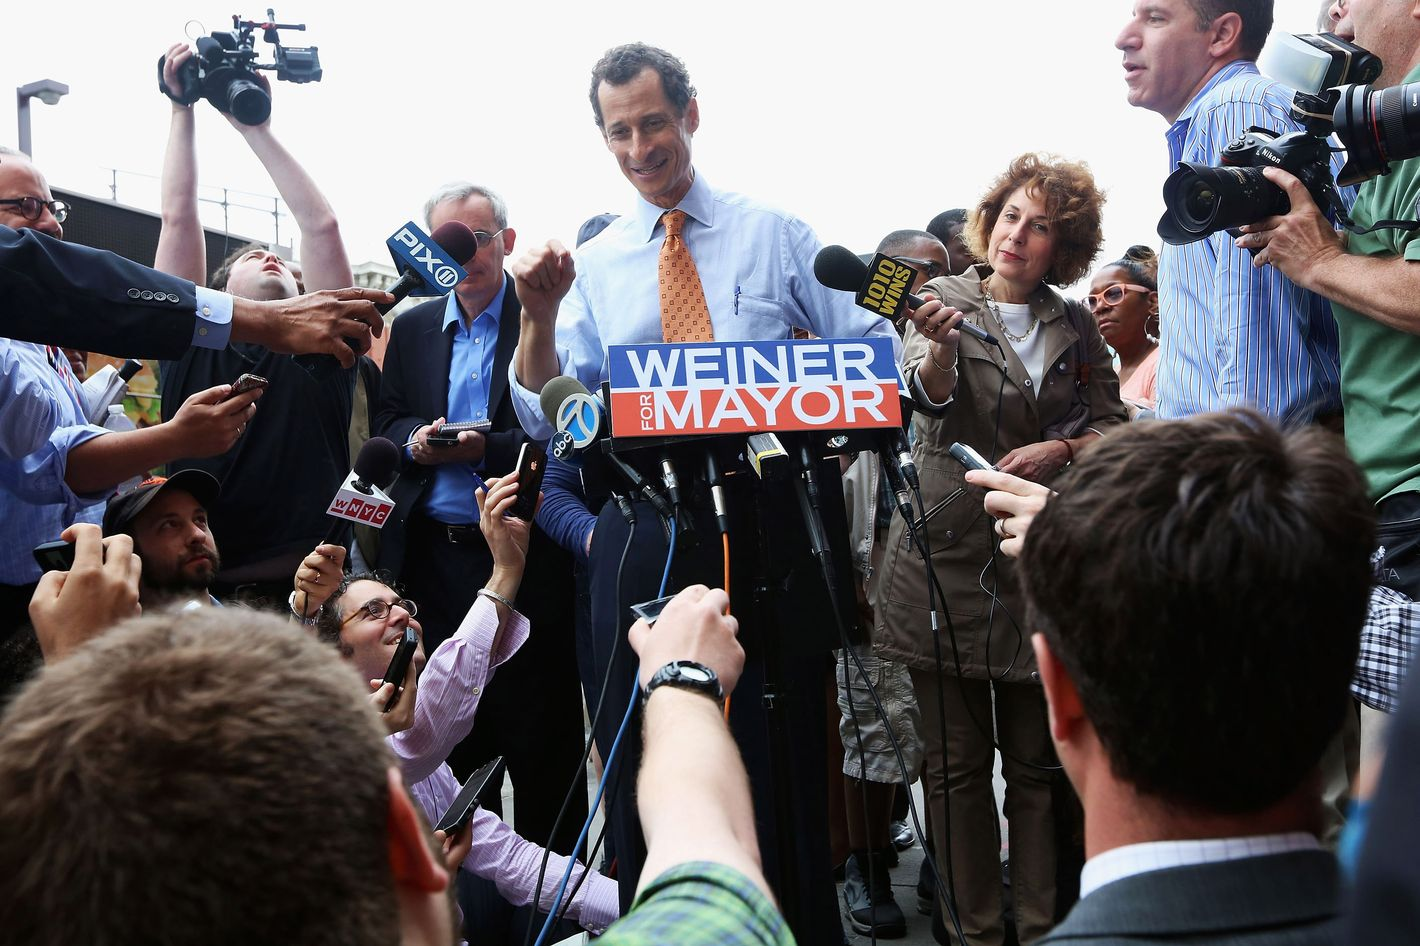 NEW YORK, NY - MAY 23:  Anthony Weiner (C) speaks to the media after courting voters outside a Harlem subway station a day after announcing he will enter the New York mayoral race on May 23, 2013 in New York City. Weiner is joining the Democratic race to succeed three-term Mayor Michael Bloomberg after he was forced to resign from Congress in 2011 following the revelation of sexually explicit online behavior.  (Photo by Mario Tama/Getty Images)